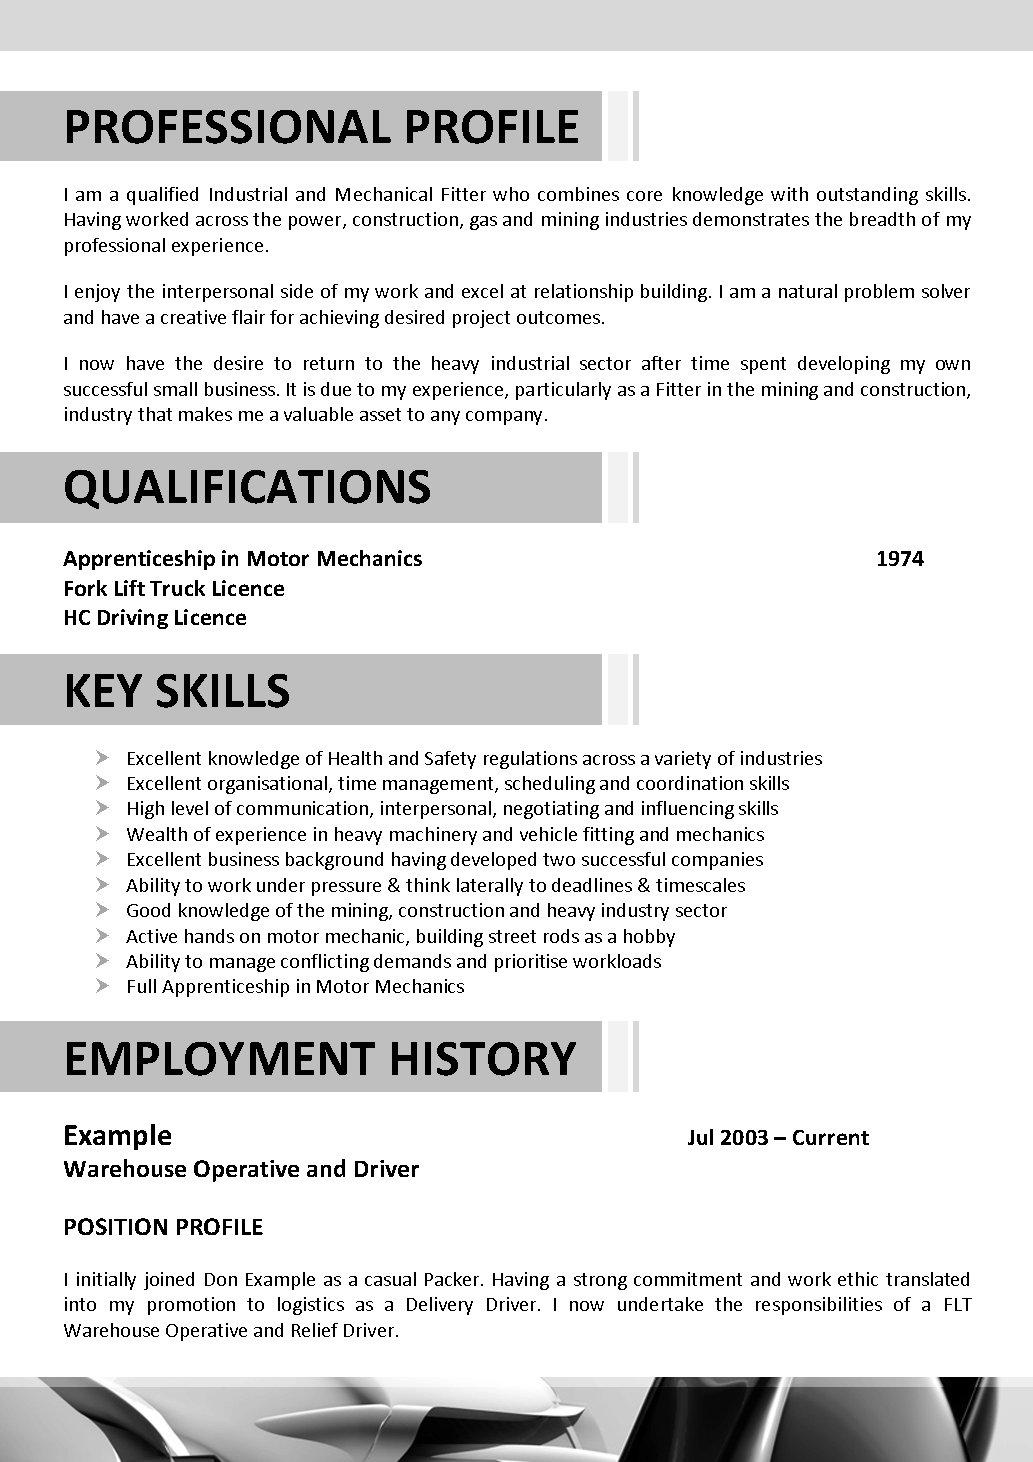 resume templates yes or no resume maker create professional resume templates yes or no sample resume templates com resume template resume templates trade resume templates